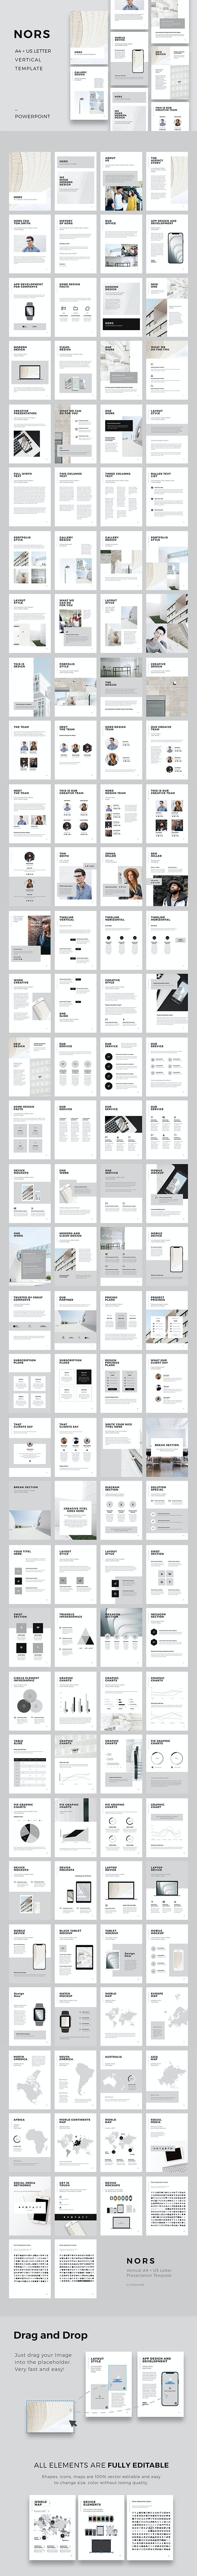 nors vertical powerpoint a4 us letter template powerpoint templates presentation templates